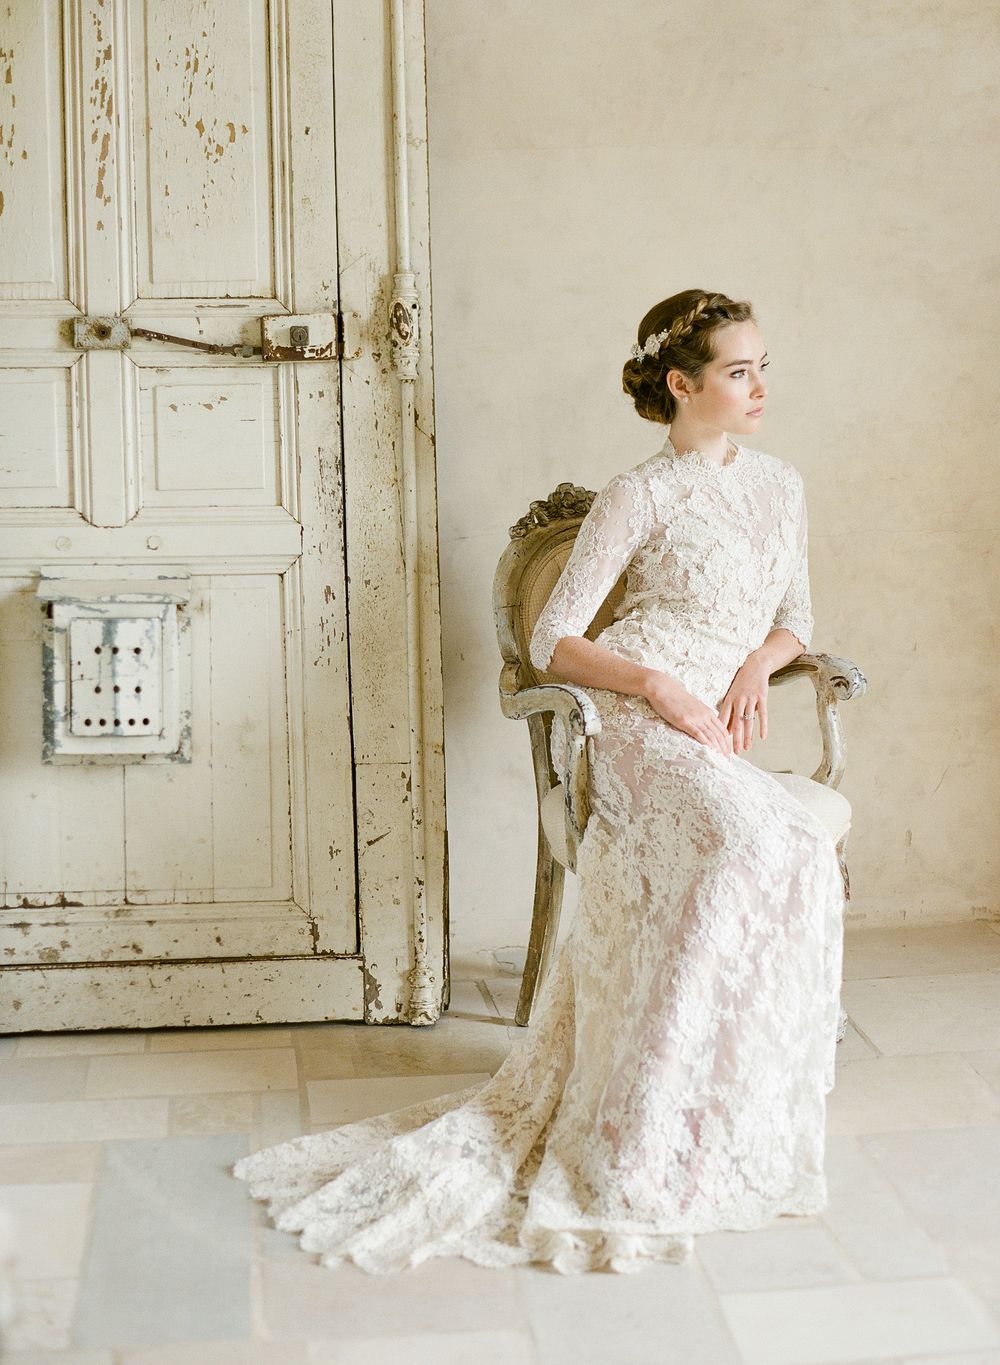 Bride Bridal Dress Wedding Lace Long Sleeve Wooden Door Updo Braid Bridal Hair Classic Inspiration